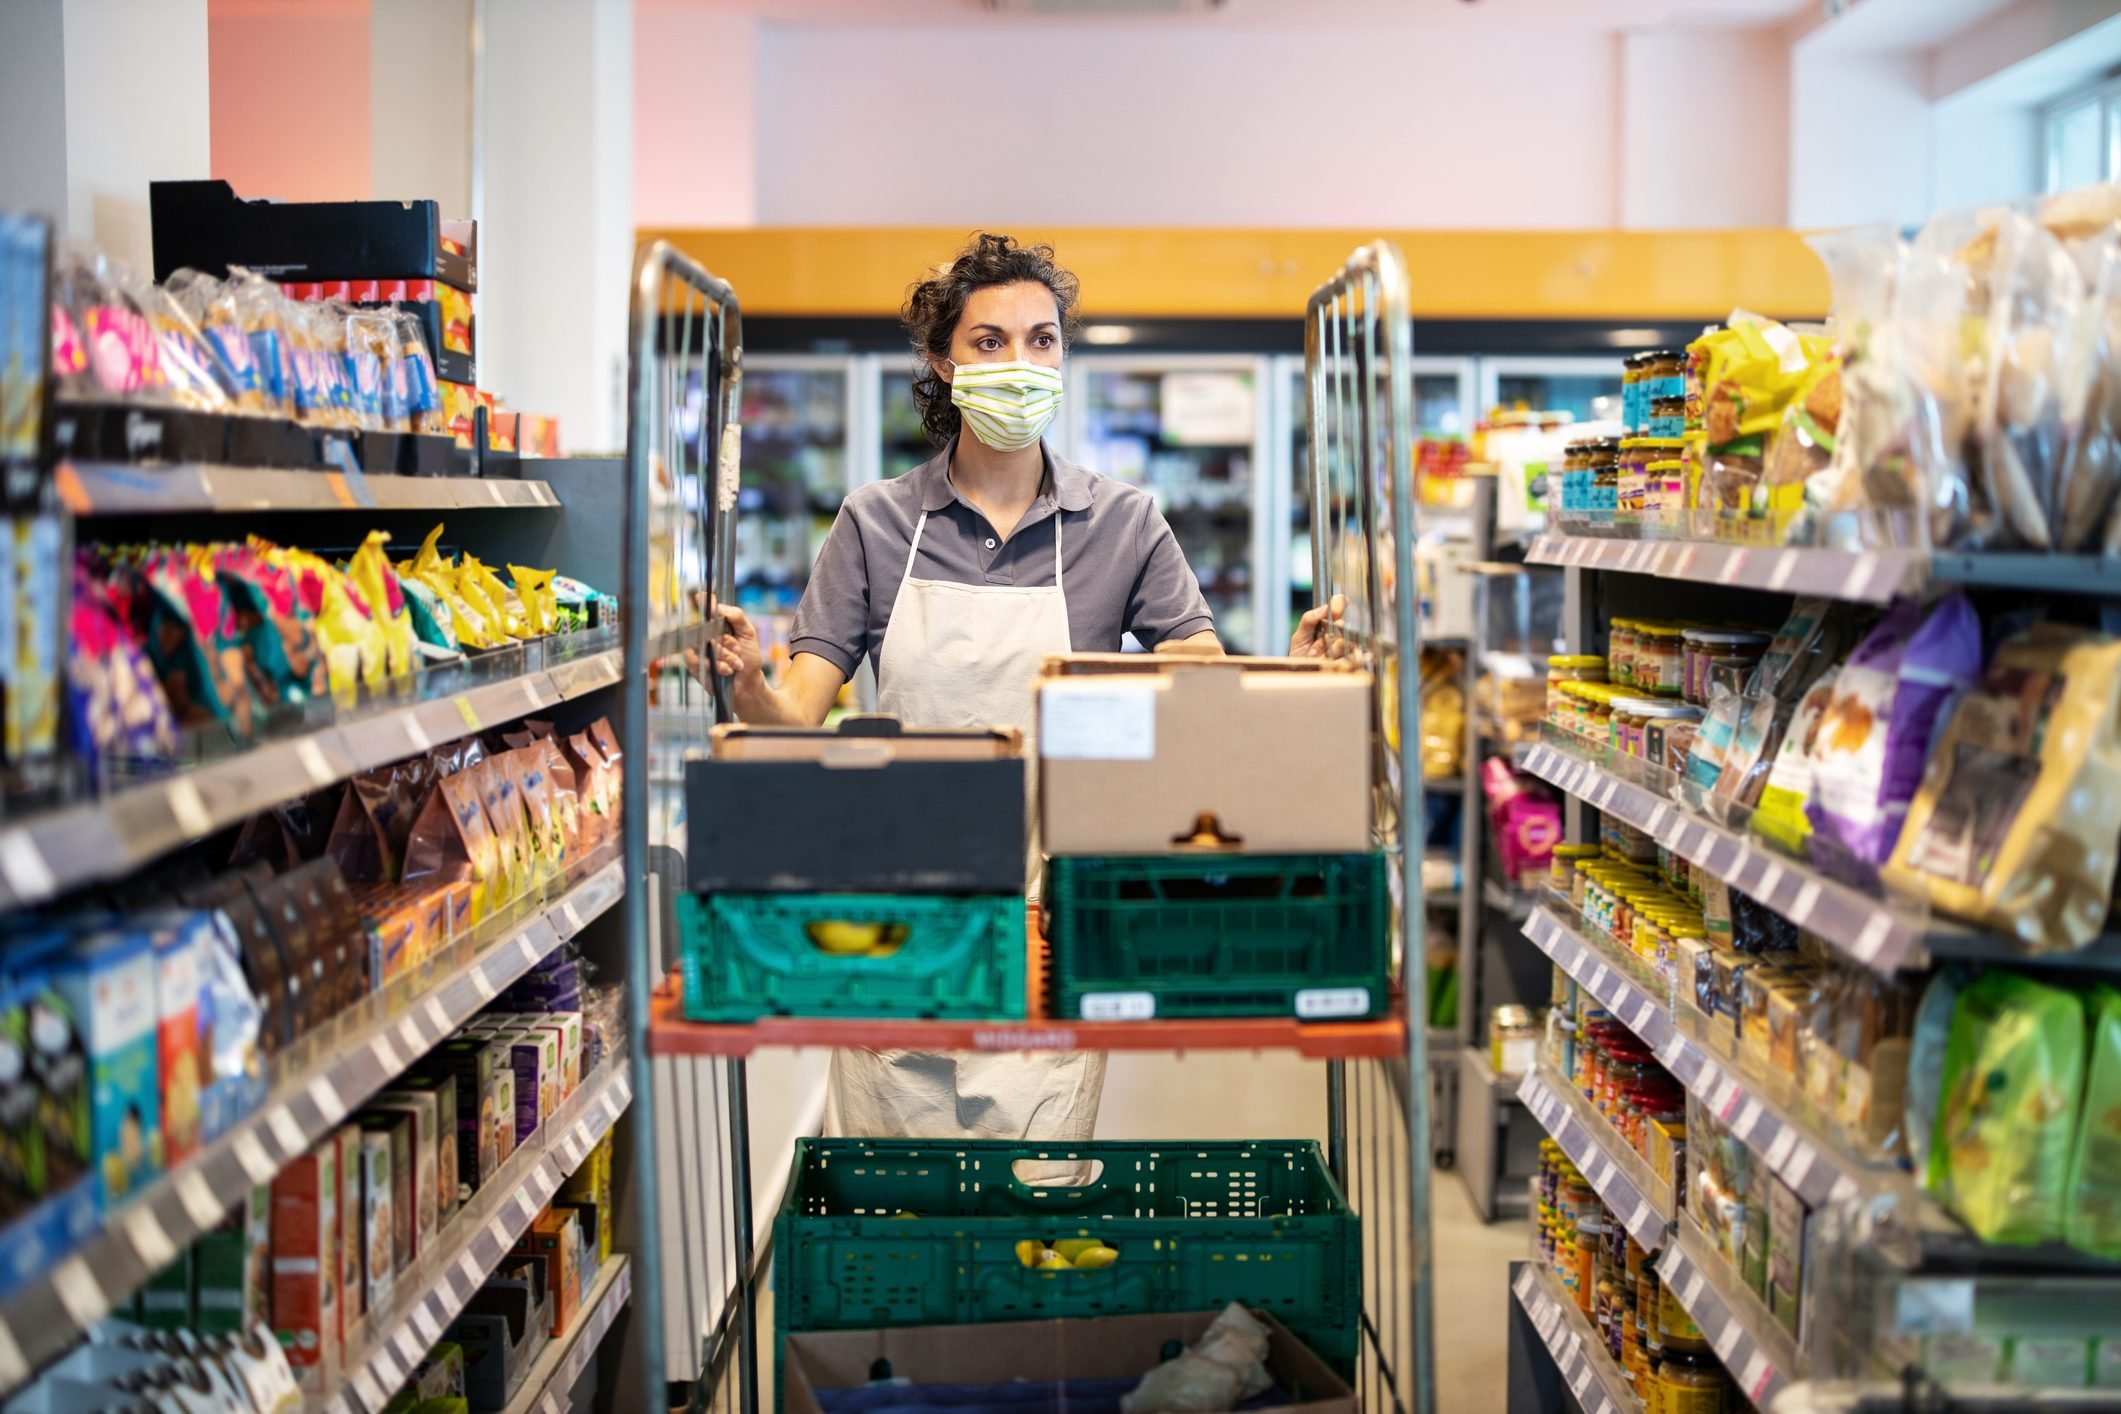 Female staff working in grocery store re-stocking goods